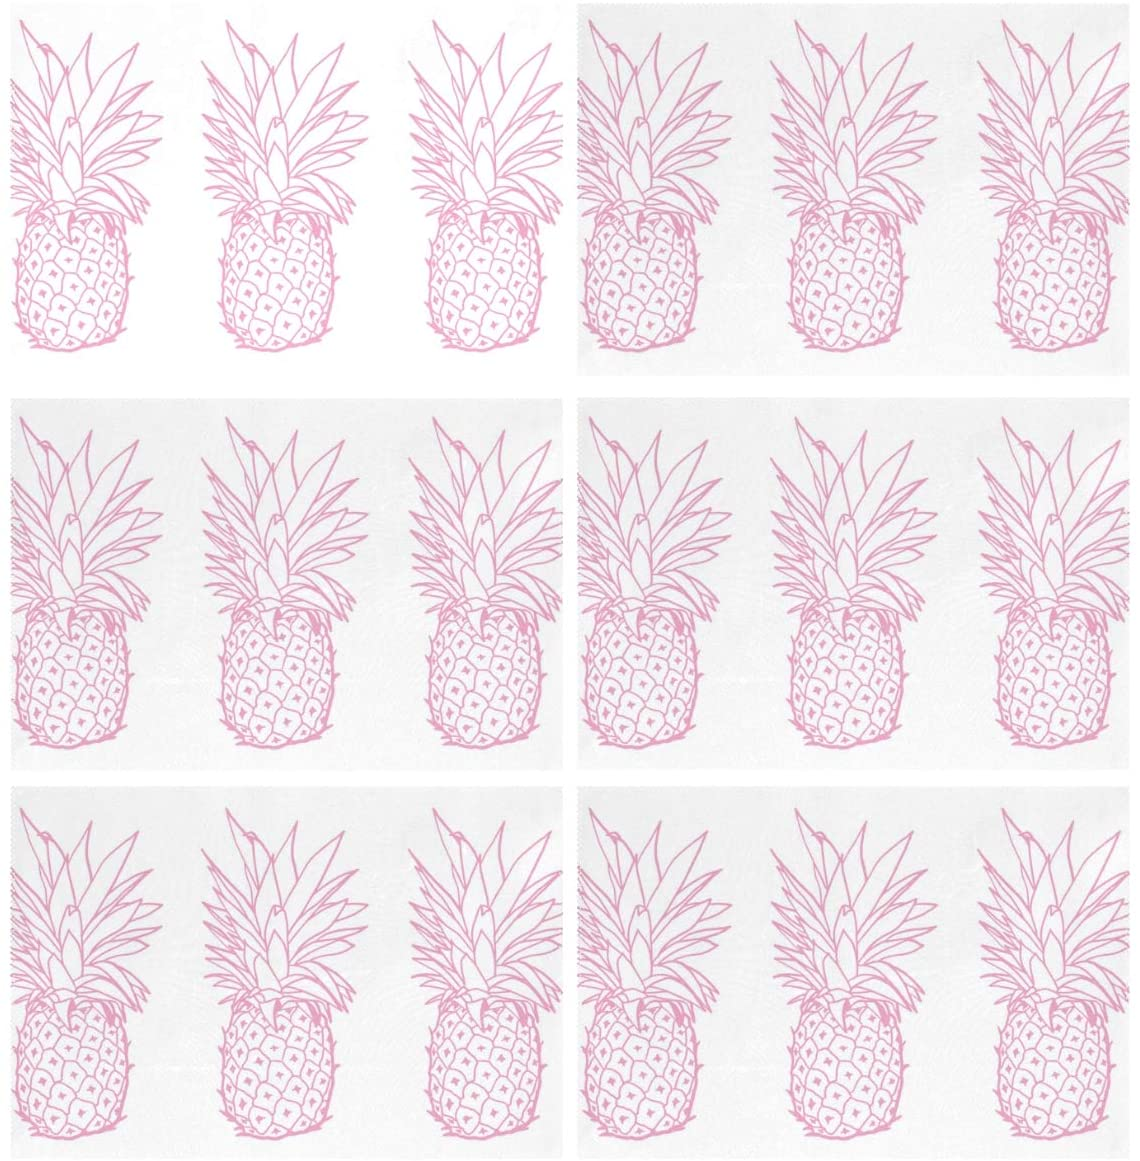 ALAZA Pink Pineapples Placemats Set of 6 for Dining Table Washable Polyester Placemat Non-Slip Heat Resistant Kitchen Table Mats Easy to Clean